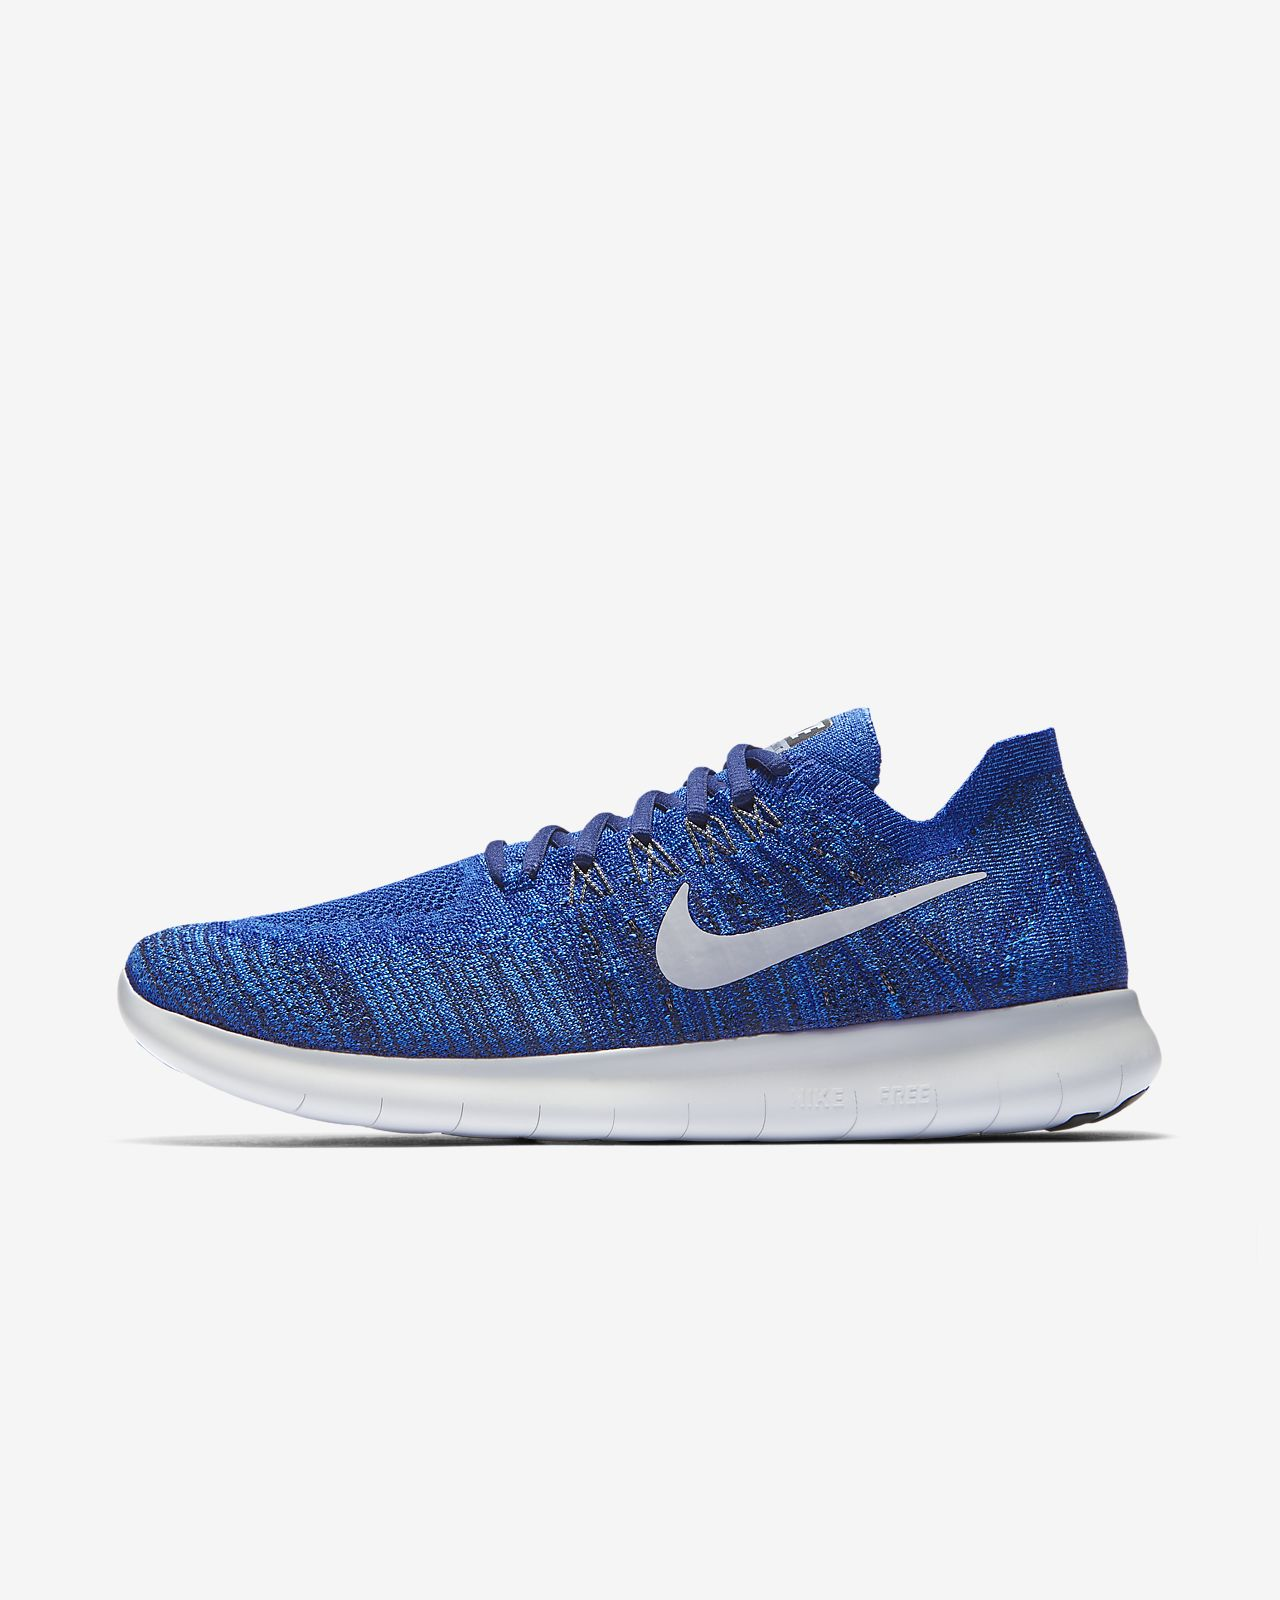 classic fit 51d5d c4a5f Chaussure de running Nike Free RN Flyknit 2017 pour Homme